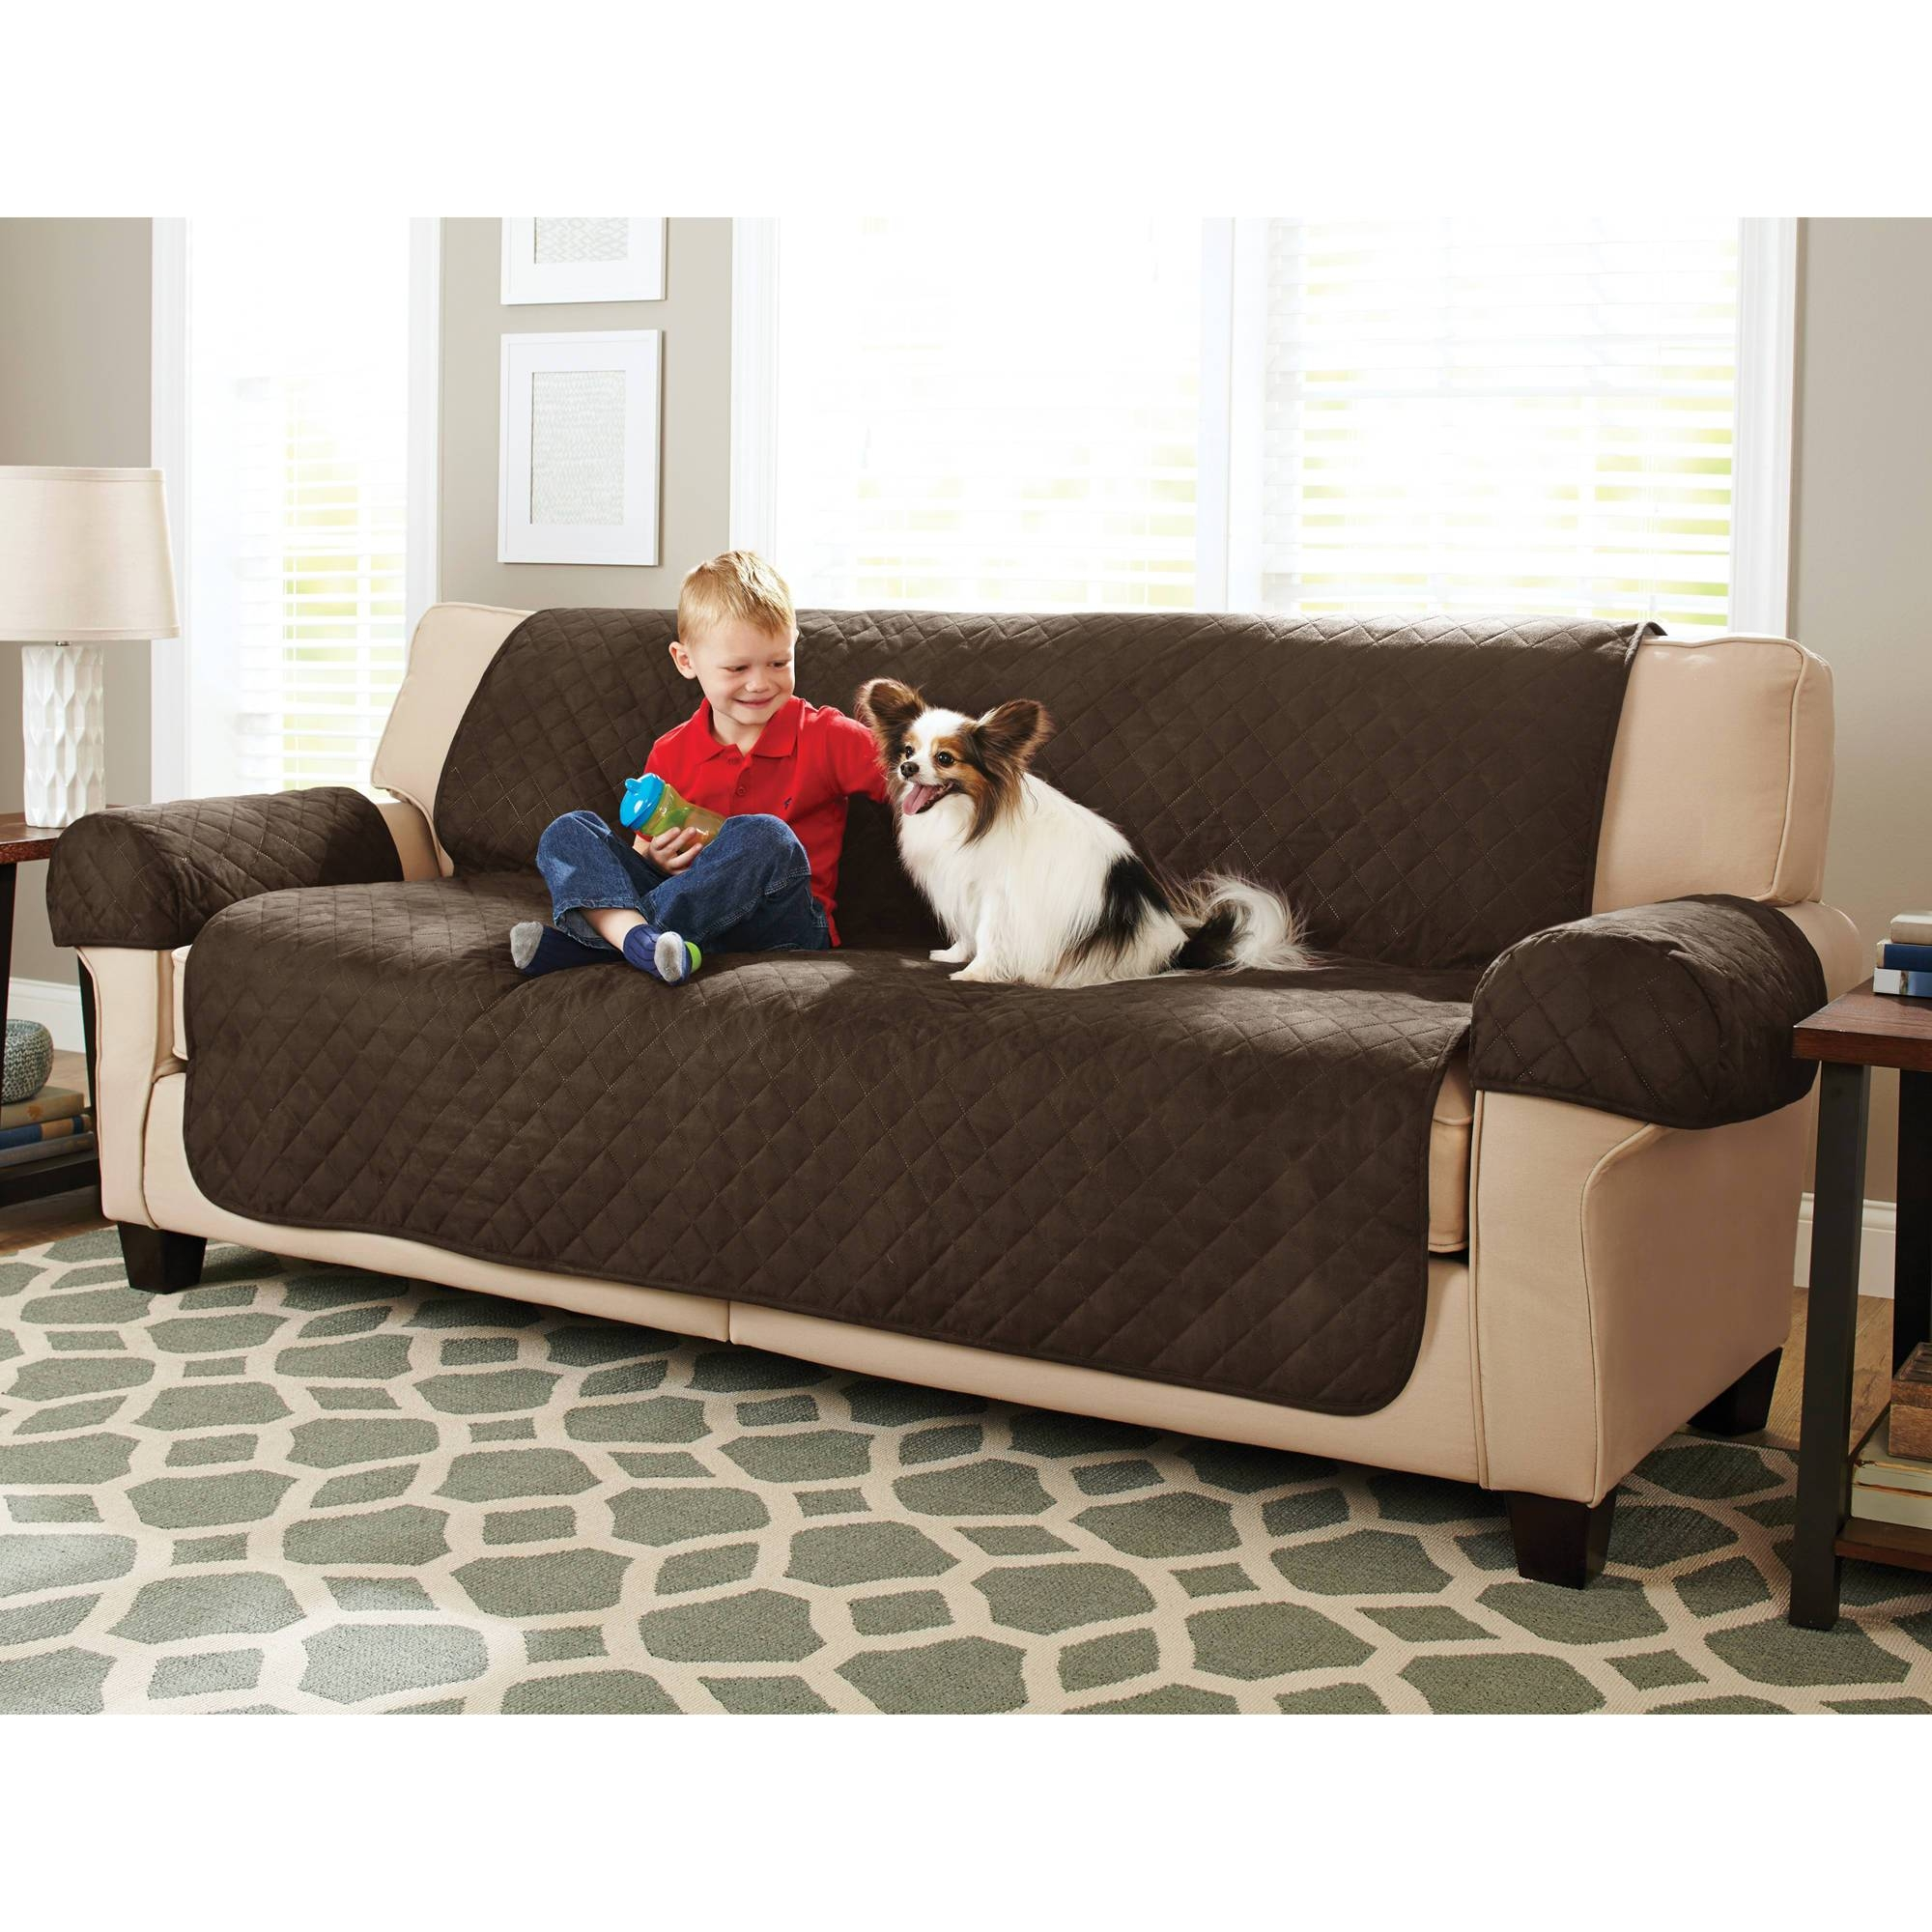 Better Homes And Gardens Waterproof Non-Slip Faux Suede Pet pertaining to Suede Slipcovers for Sofas (Image 1 of 15)